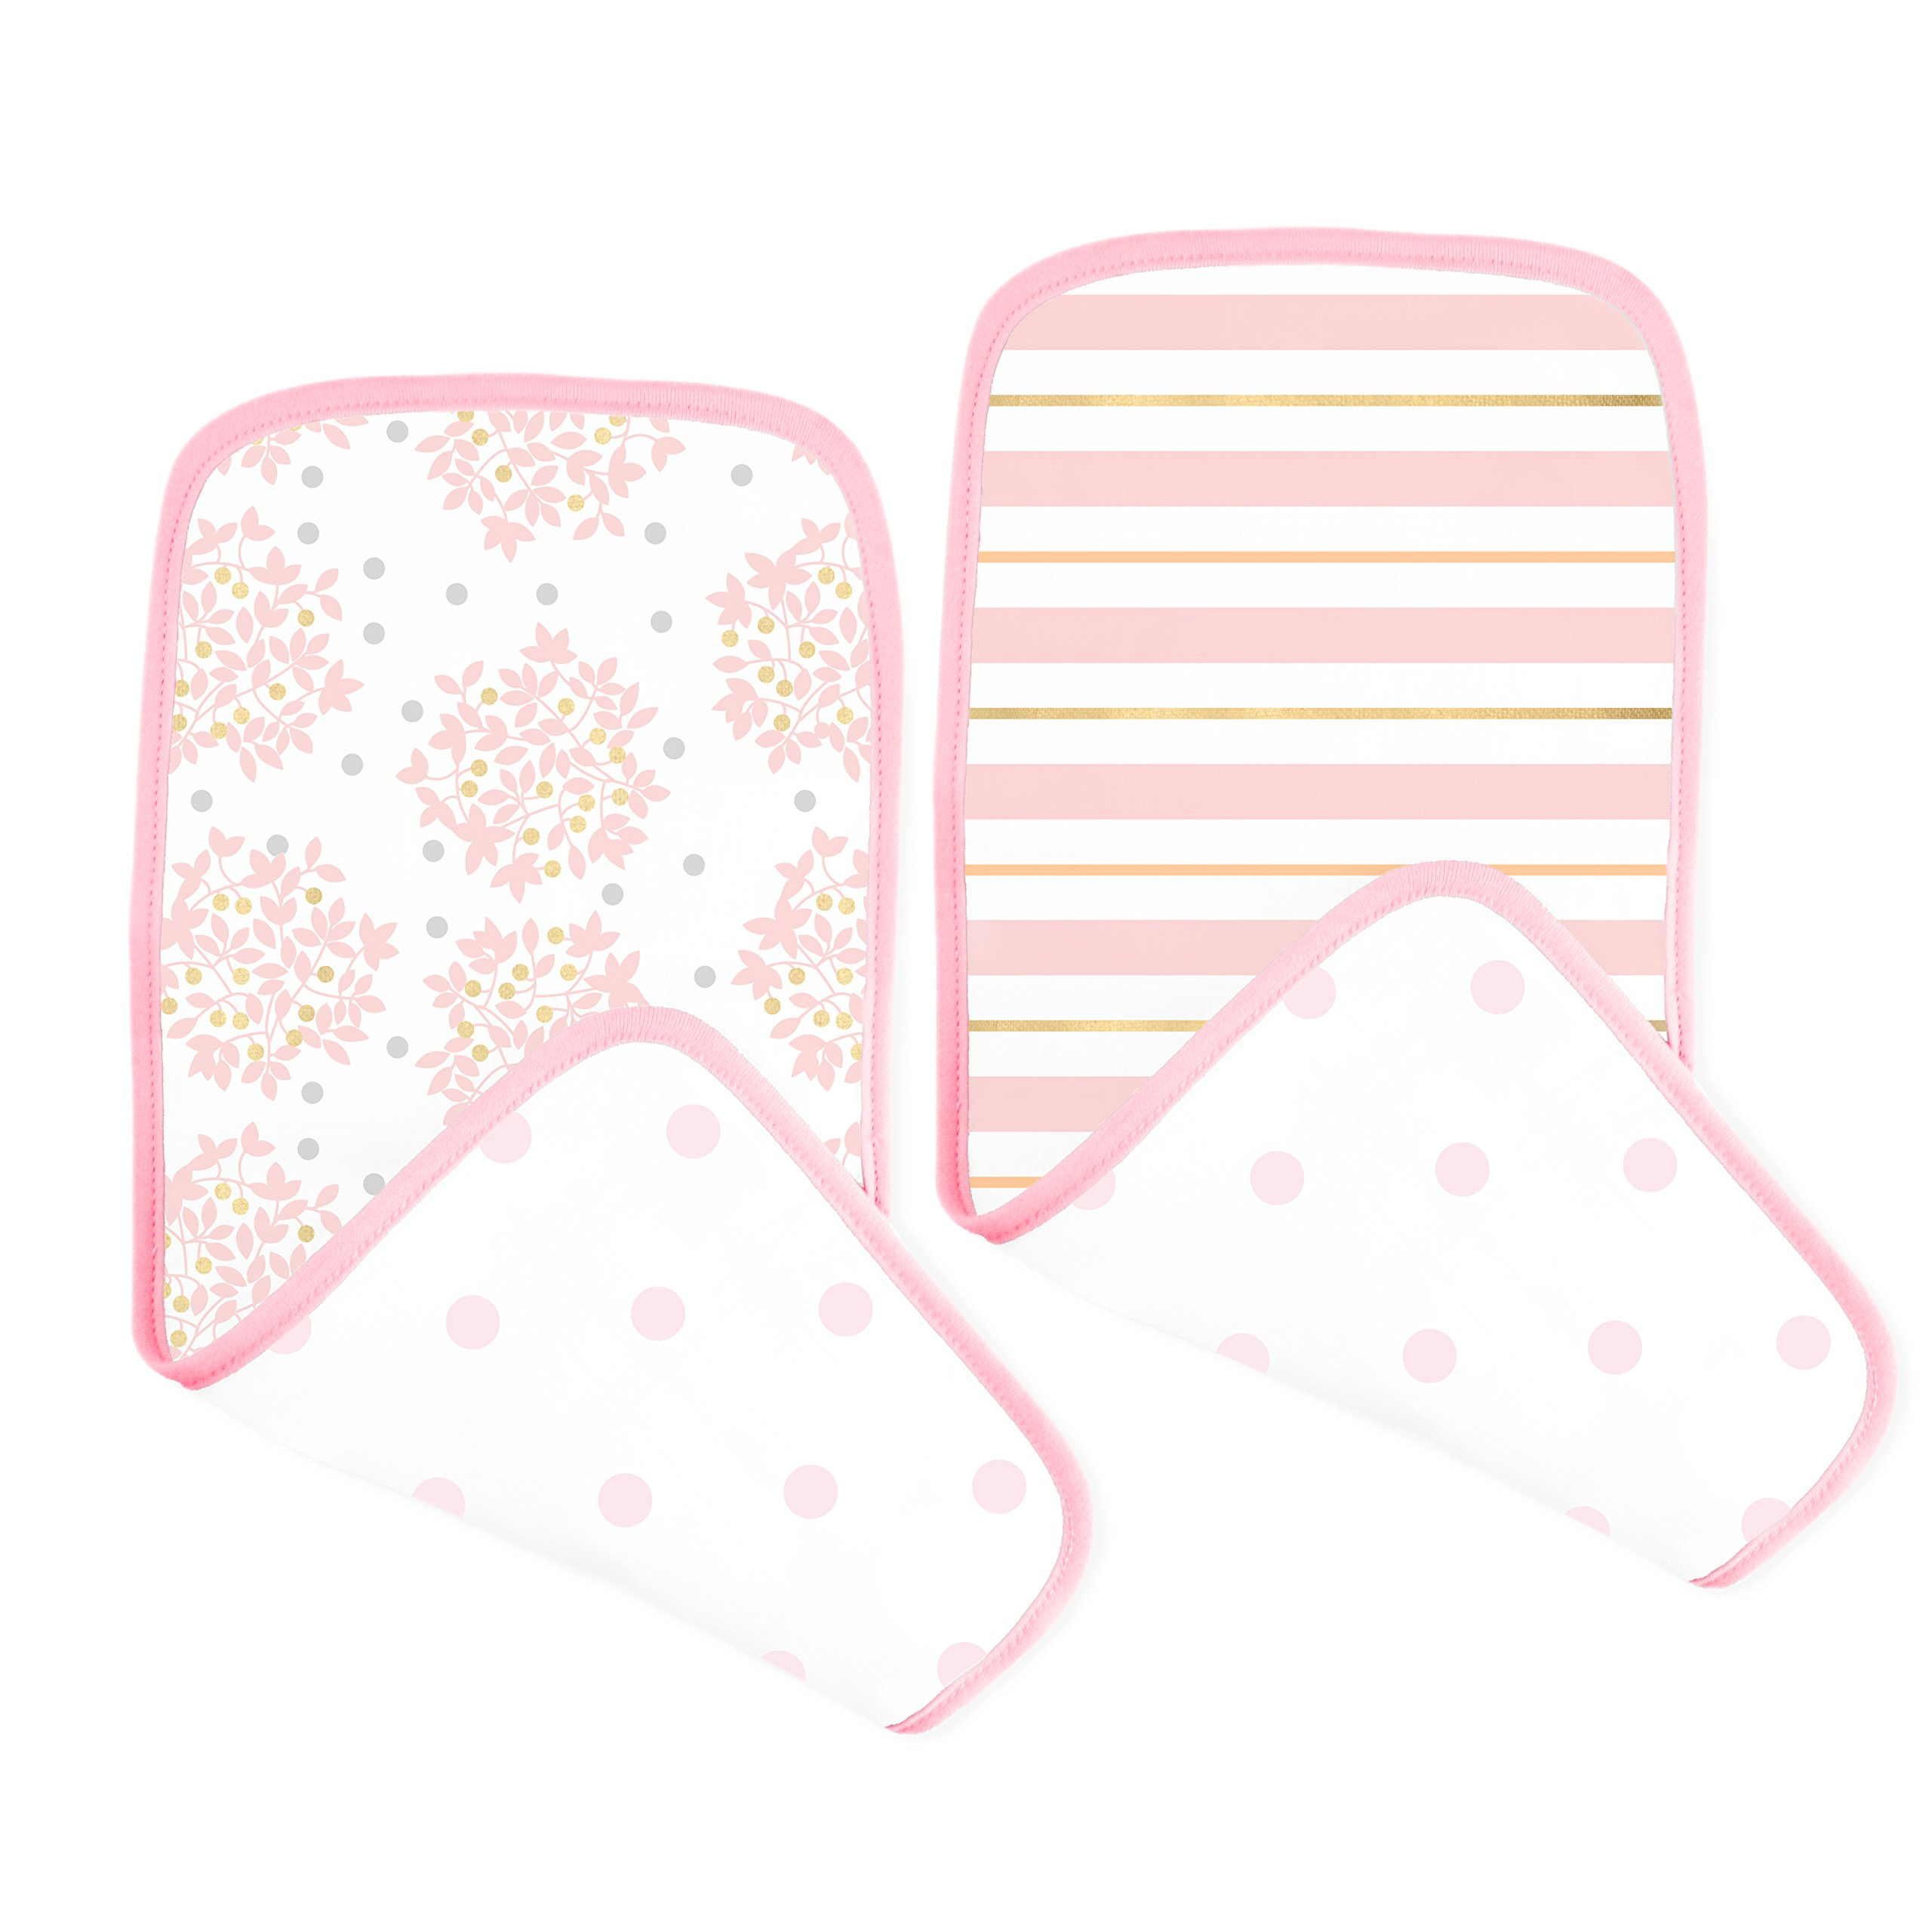 SwaddleDesigns Cotton Muslin Baby Burpies, Set of 2 Cotton Burp Cloths, Pink Heavenly Floral Shimmer